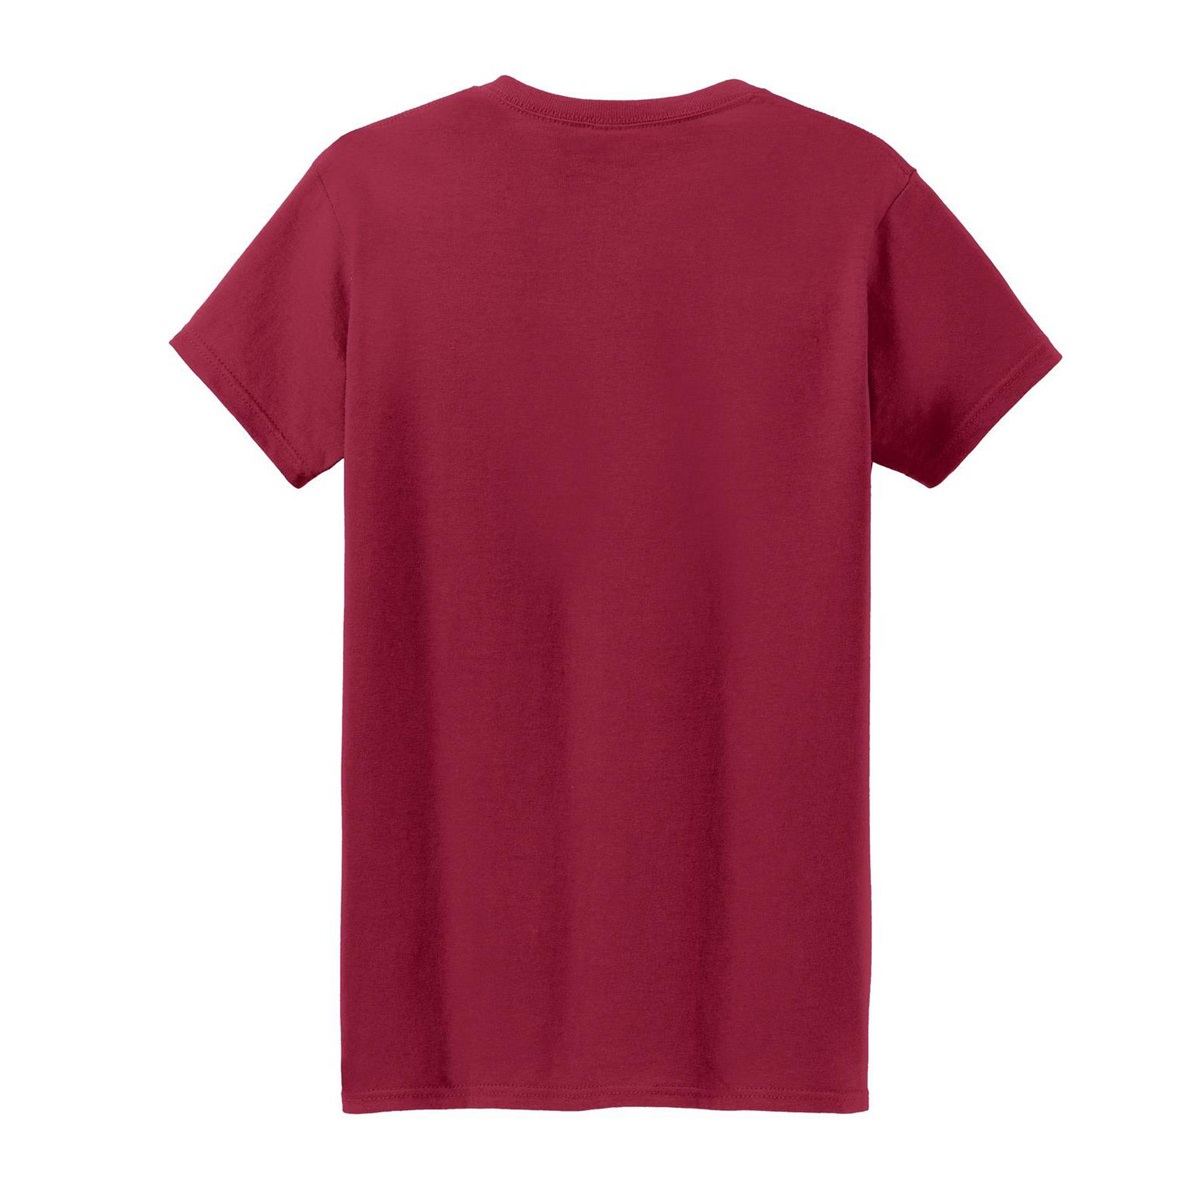 Gildan 5000l ladies heavy cotton t shirt cardinal red for Cardinal color t shirts